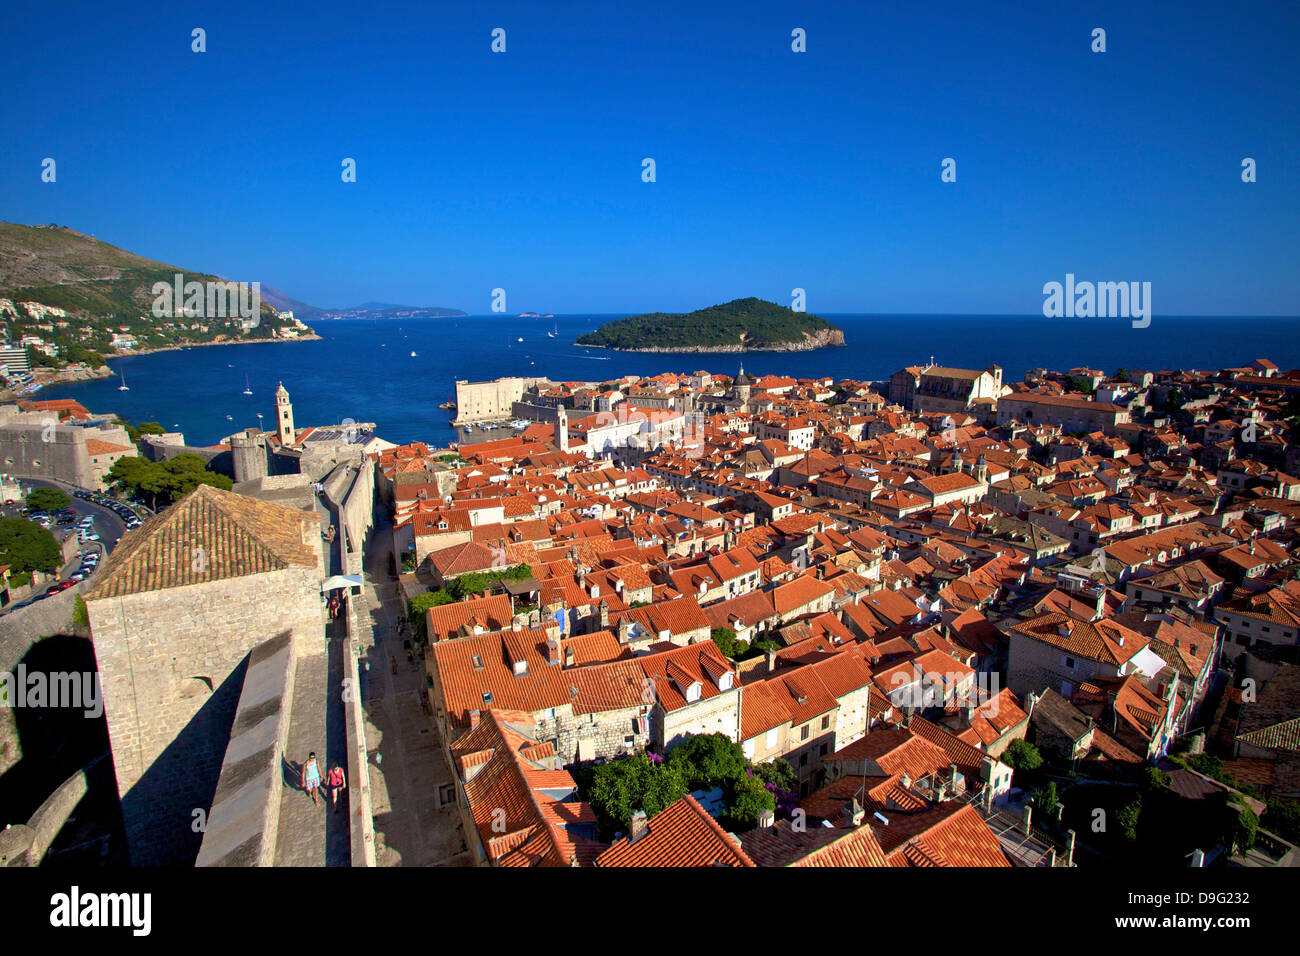 View over Old City including City Walls, UNESCO World Heritage Site, Dubrovnik, Croatia - Stock Image